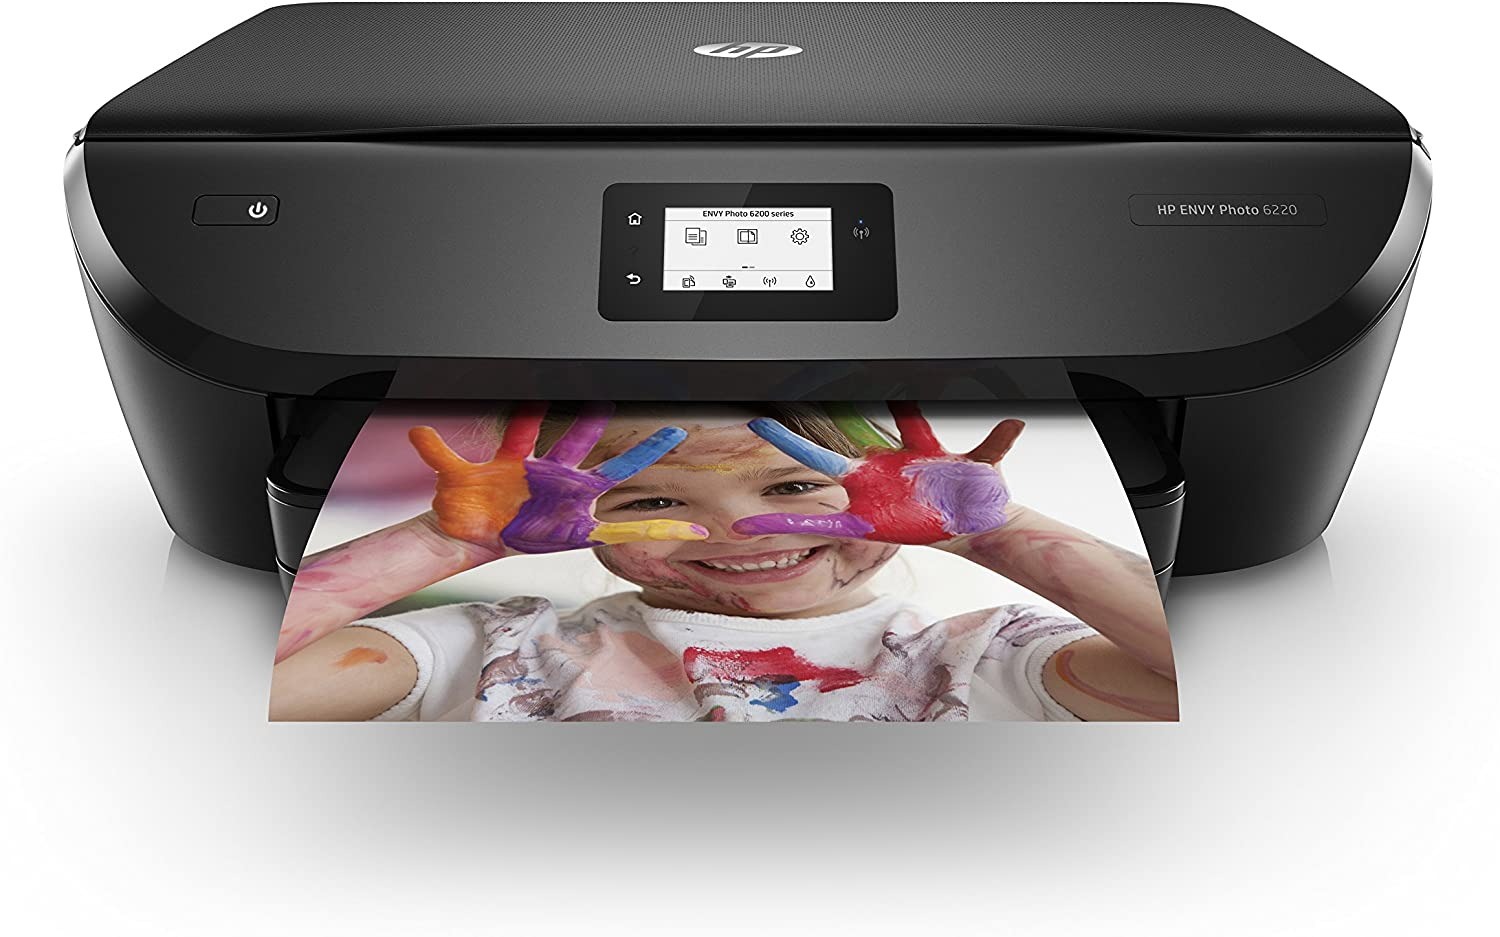 HP Envy Photo 6220 All-in-One Printer with 12 Months of Instant Ink Included, Black uk reviews